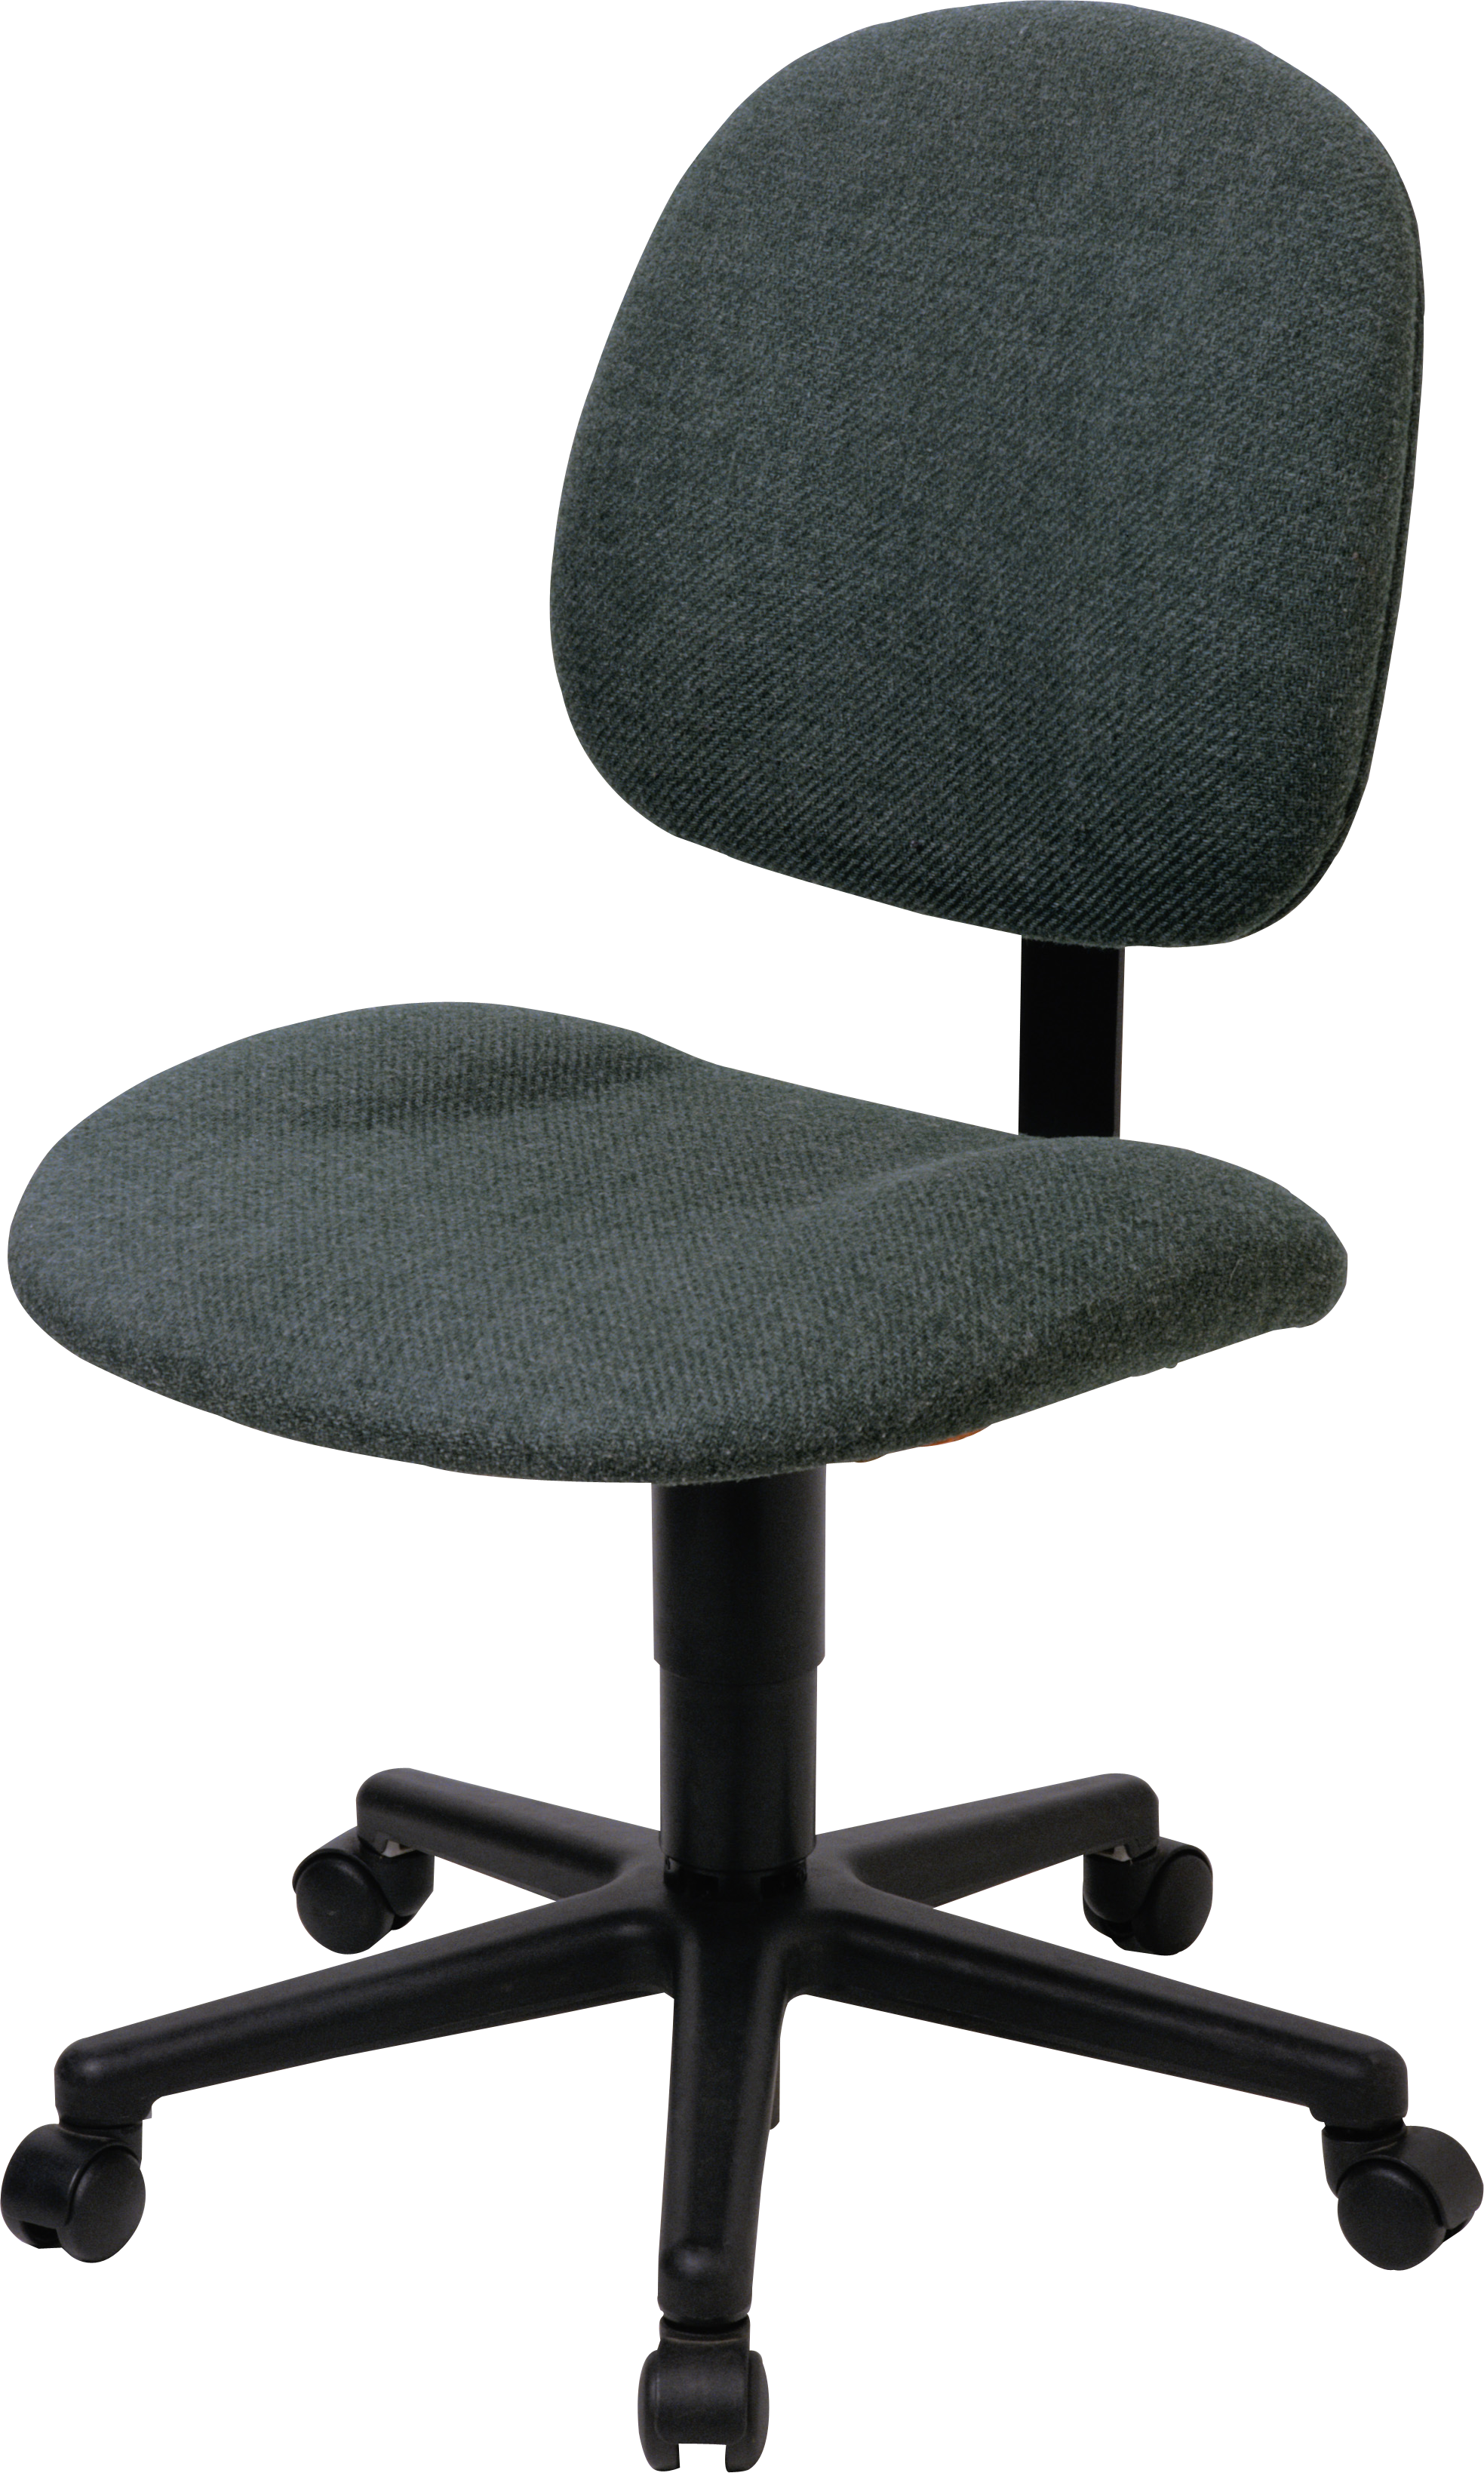 Desk clipart armchair Download image Office chair images